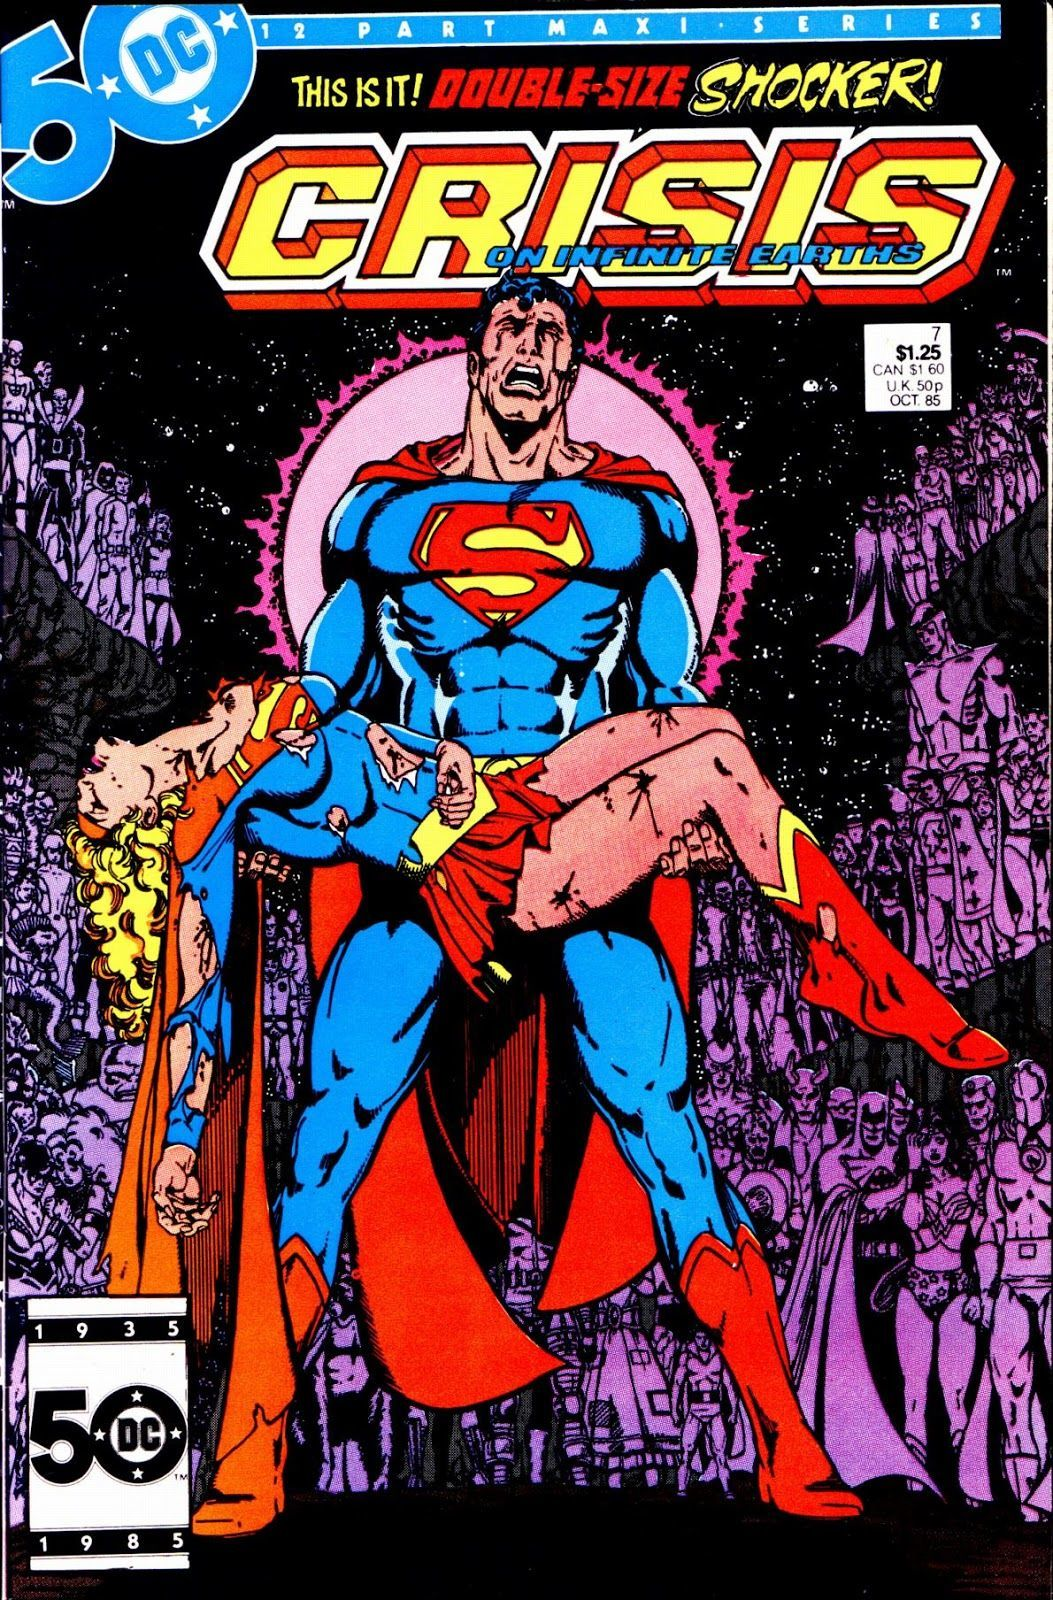 Crisis on Infinite Earths #7 (Written by Marv Wolfman, Art by George Perez)